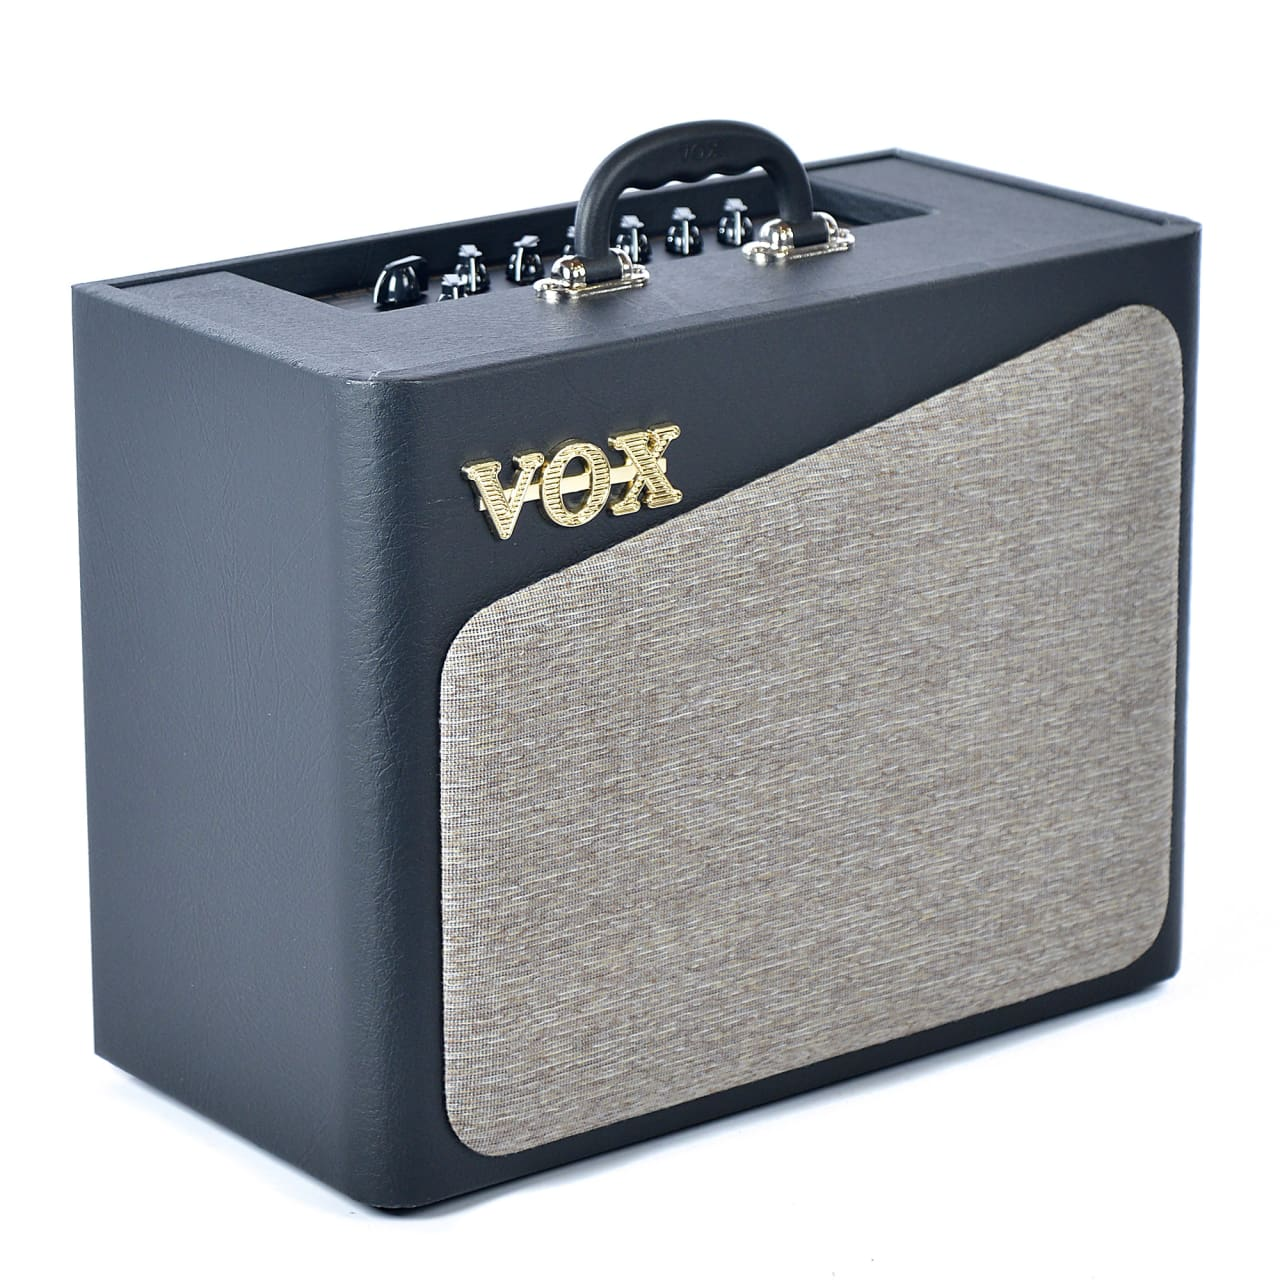 brand new vox av15g electric guitar amp allen music shop reverb. Black Bedroom Furniture Sets. Home Design Ideas